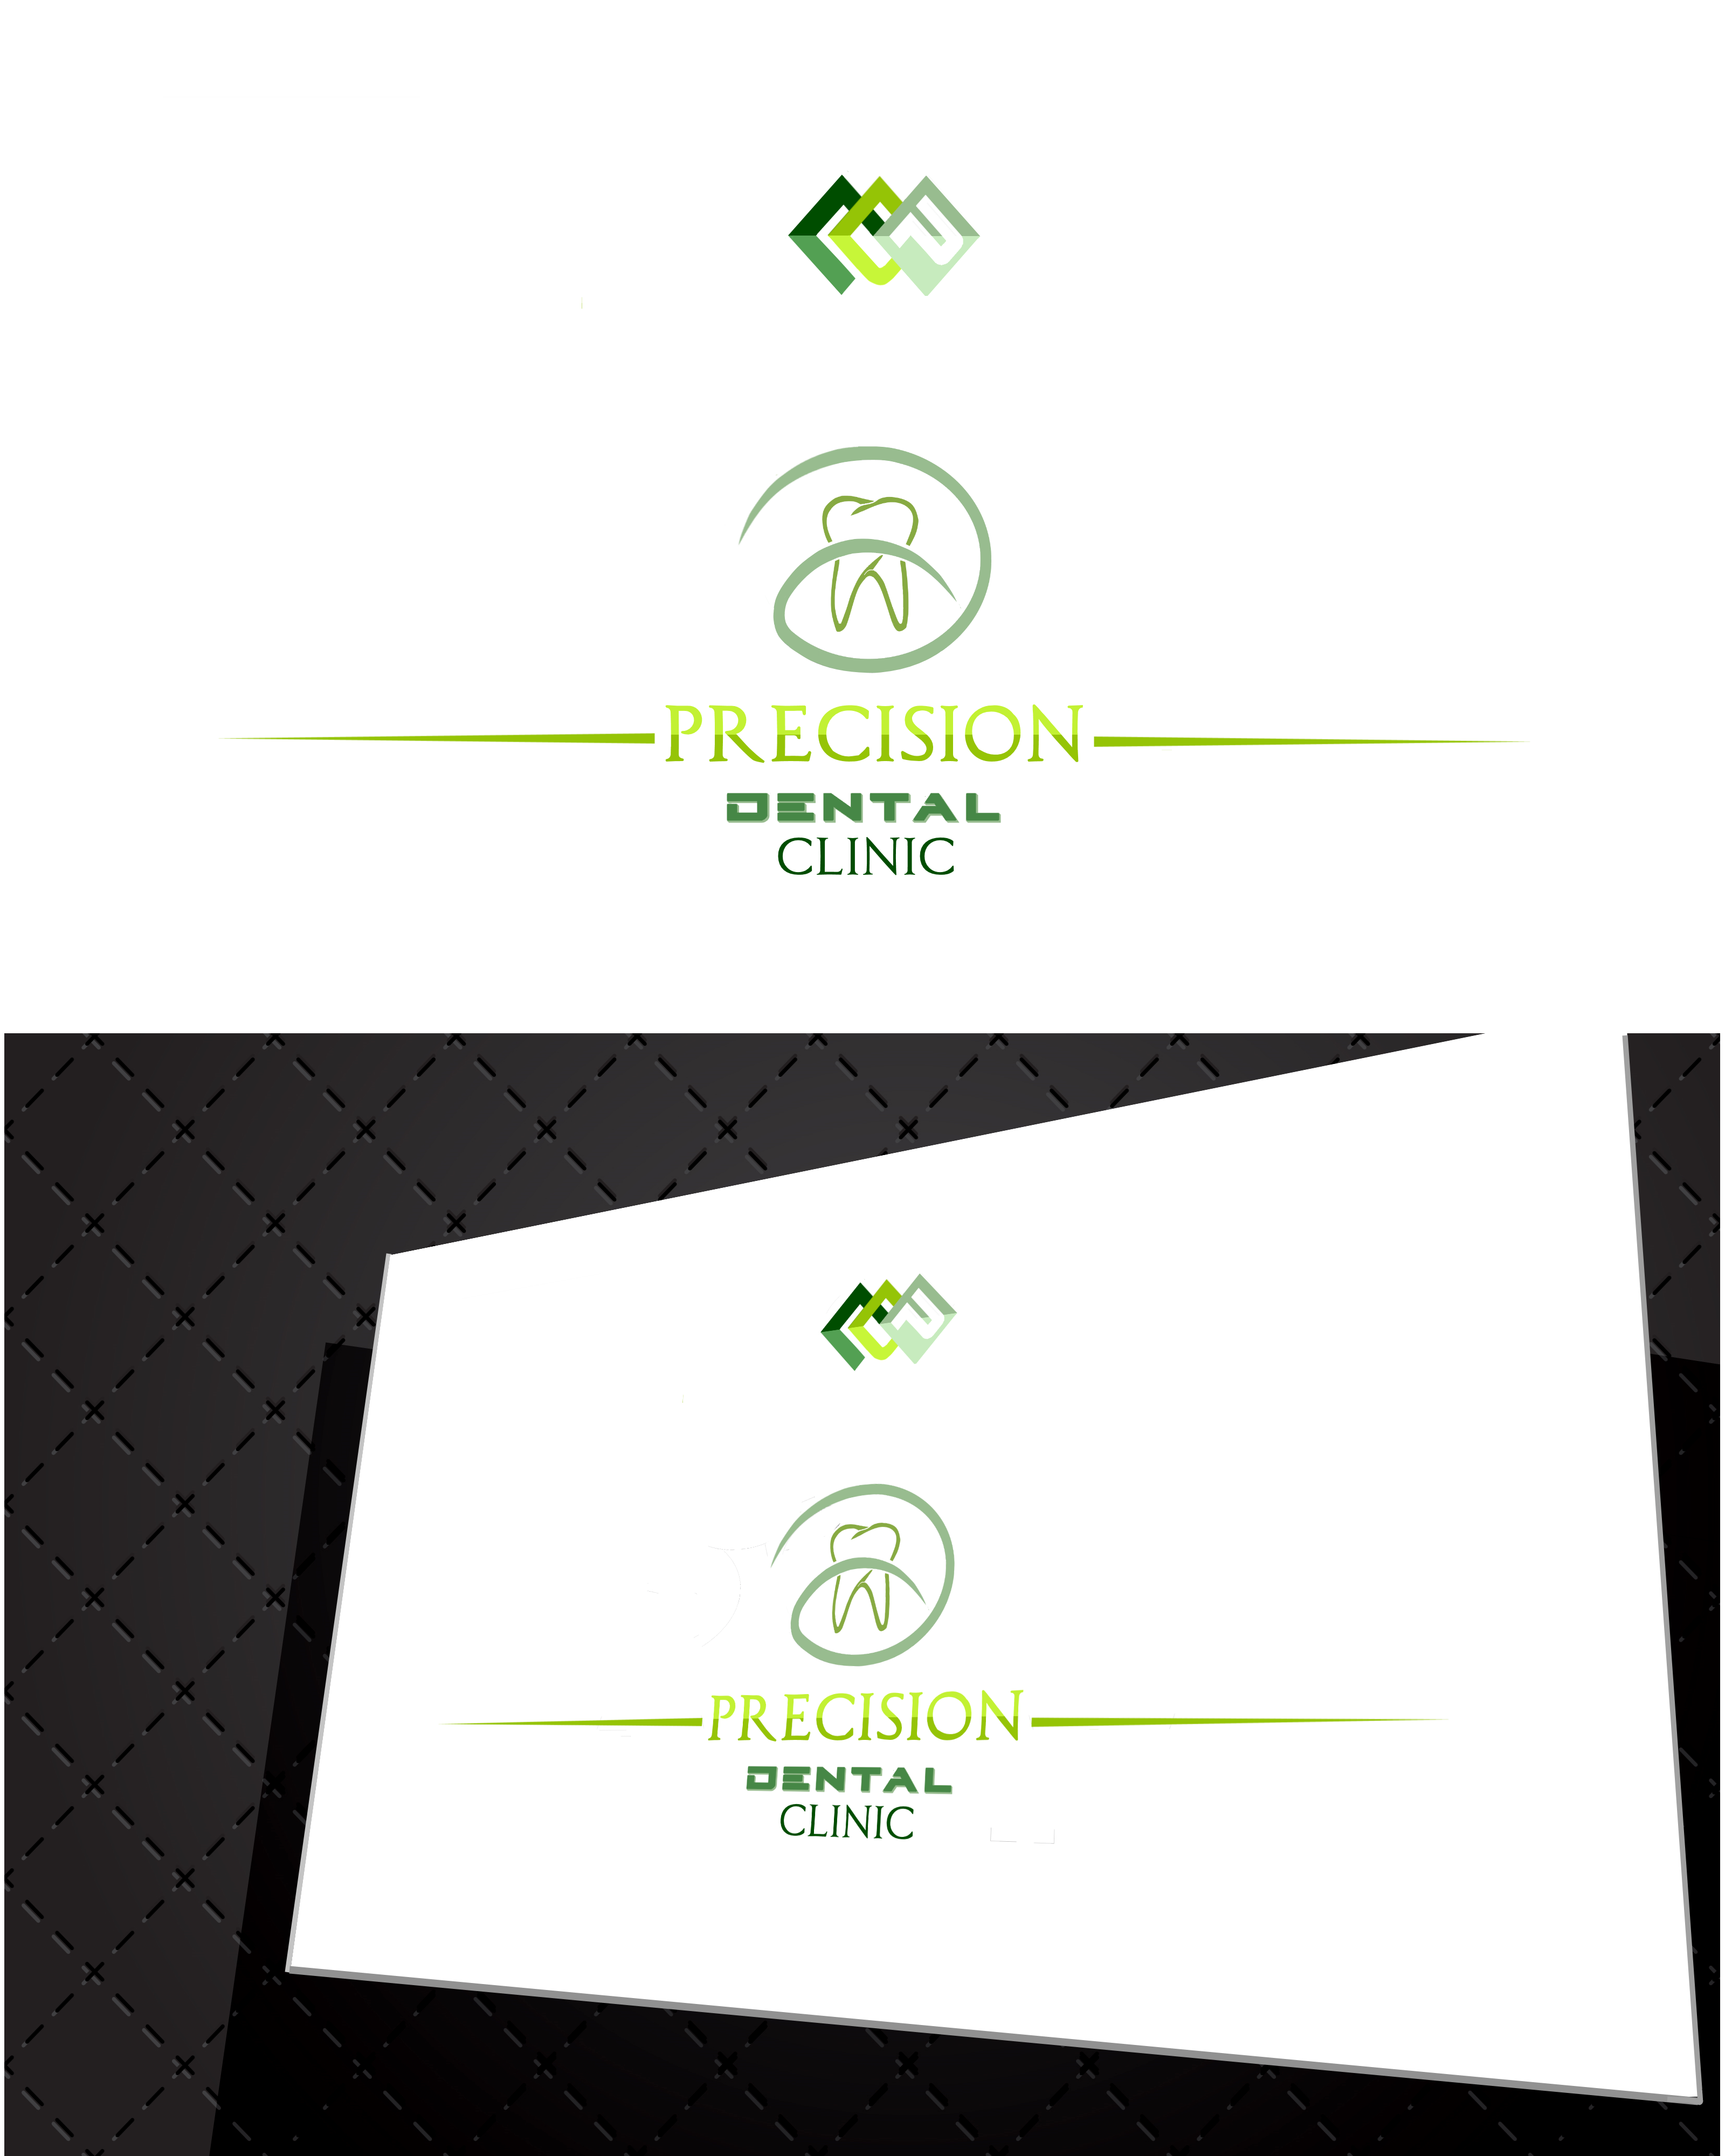 Logo Design by Roberto Bassi - Entry No. 183 in the Logo Design Contest Captivating Logo Design for Precision Dental Clinic.